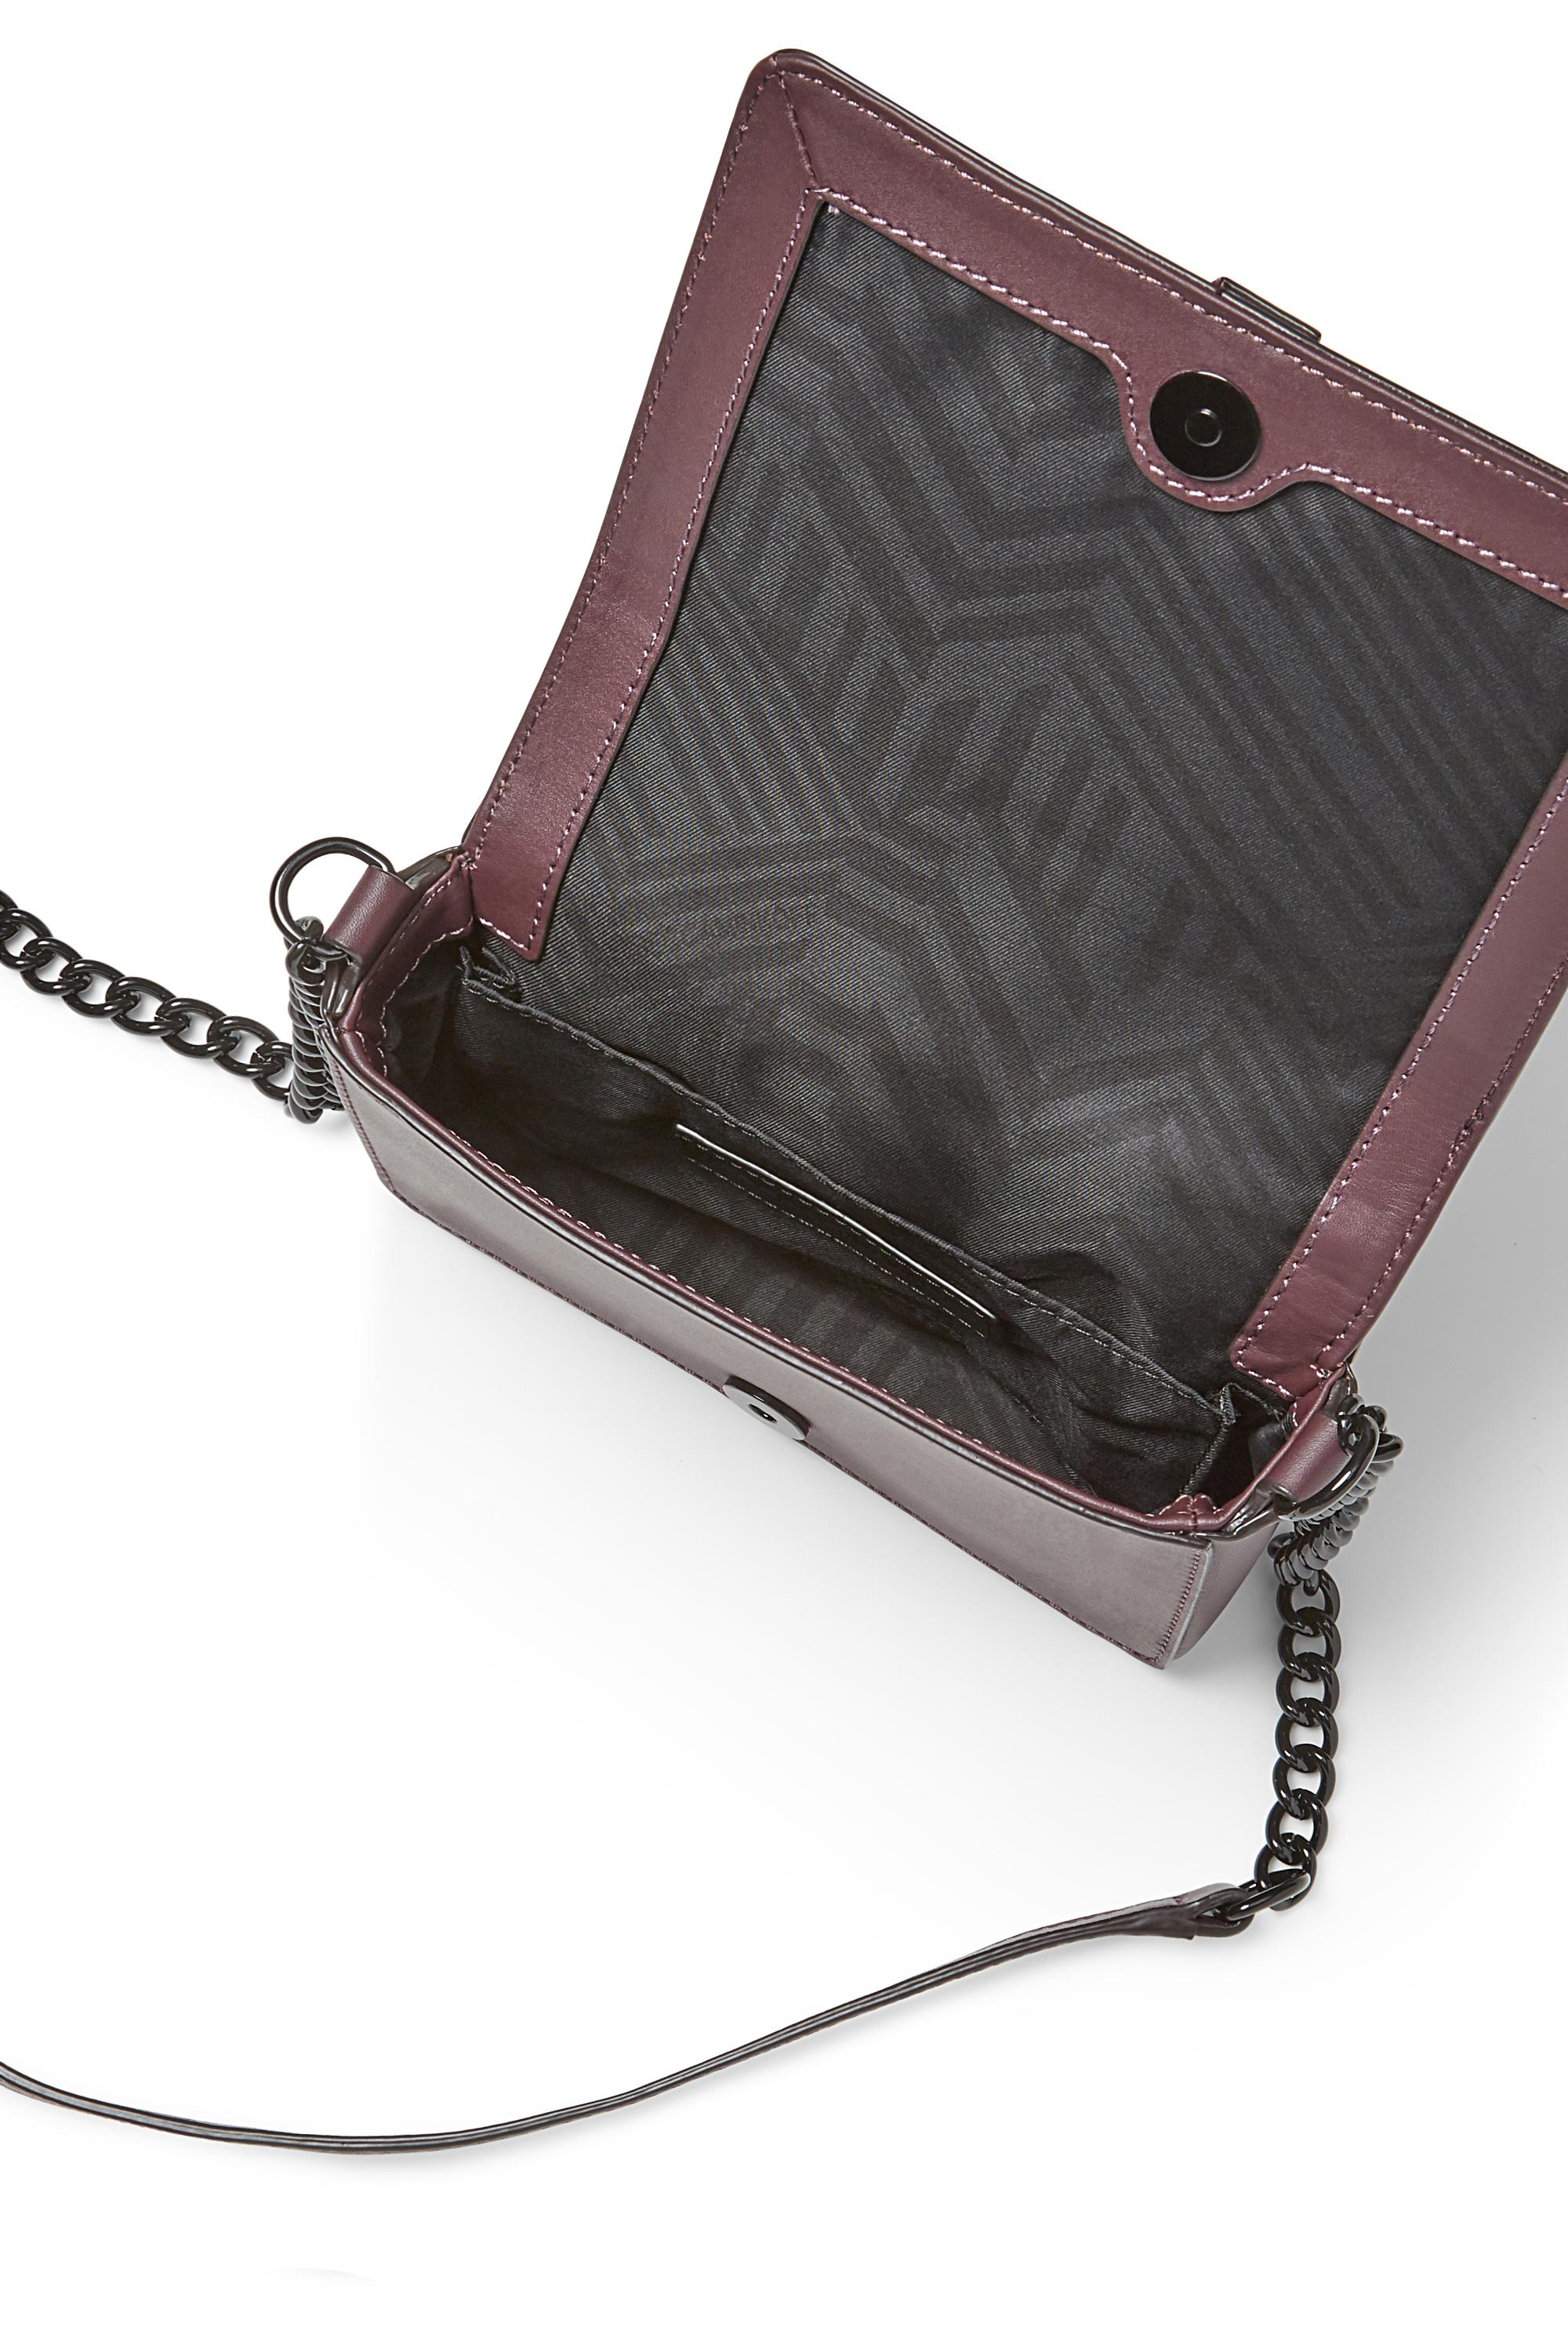 Rebecca Minkoff Leather M.a.b. Flap Crossbody